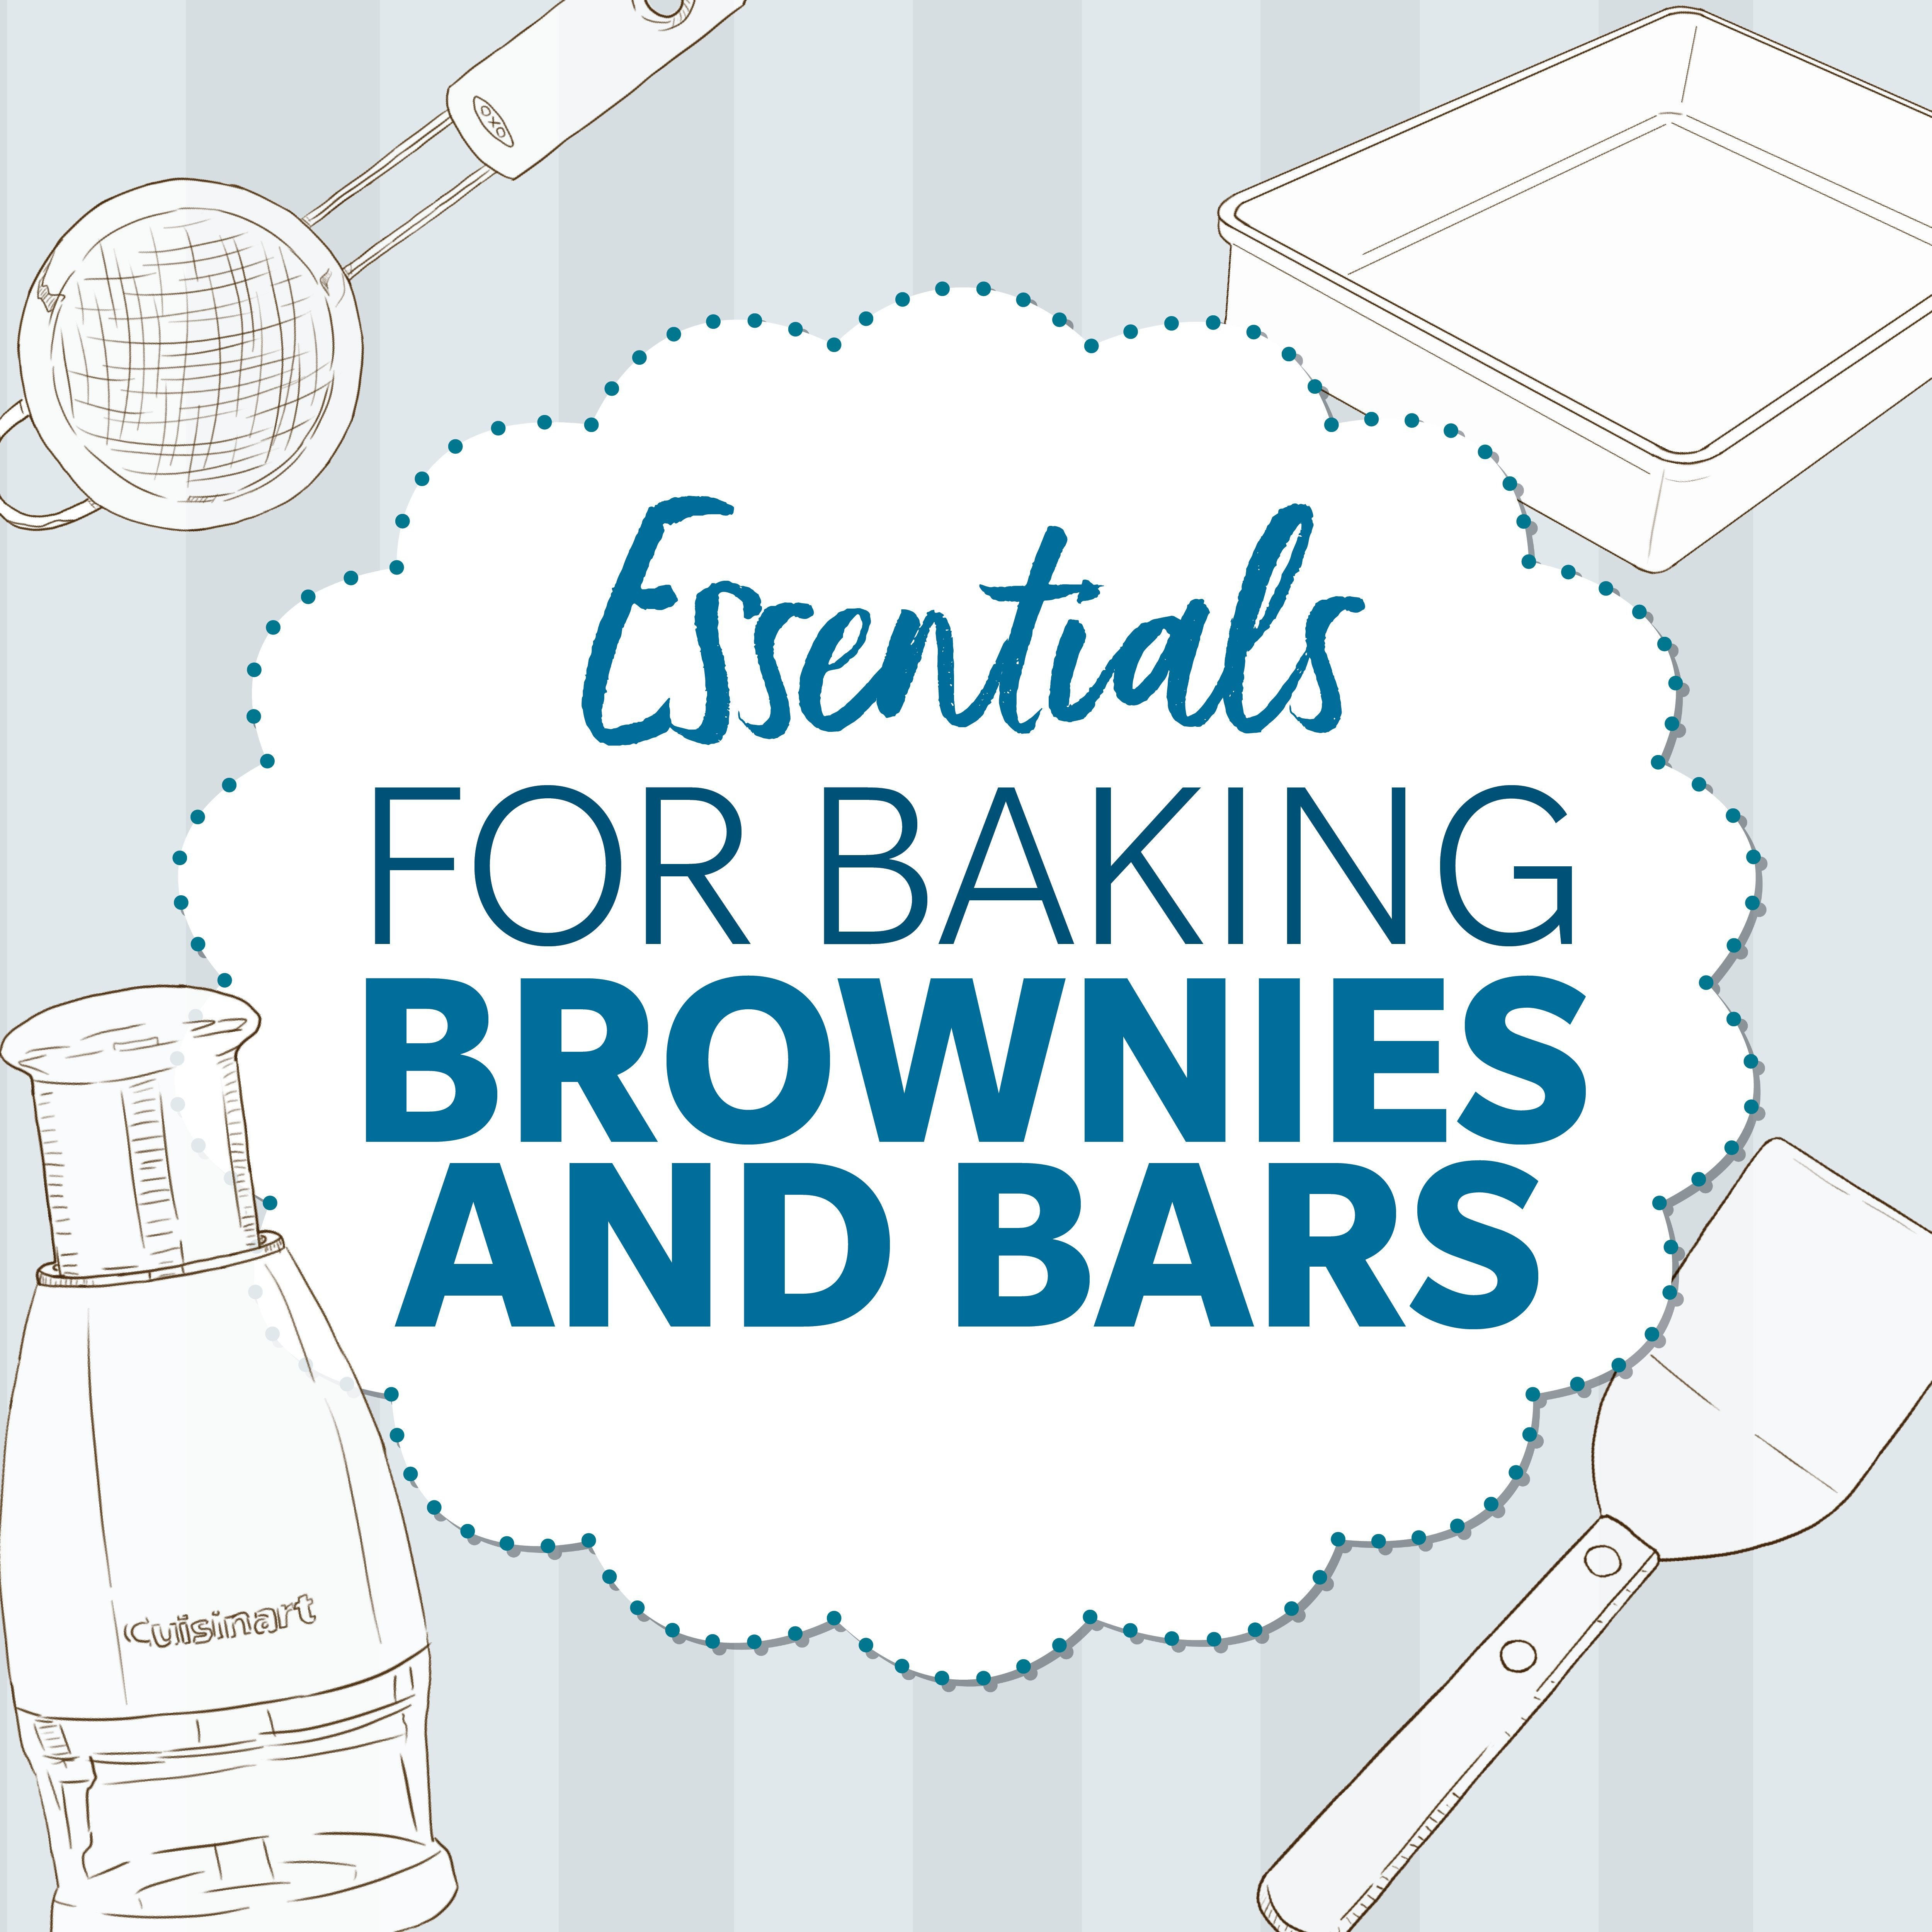 6 Tools You Need to Make Better Dessert Bars and Brownies